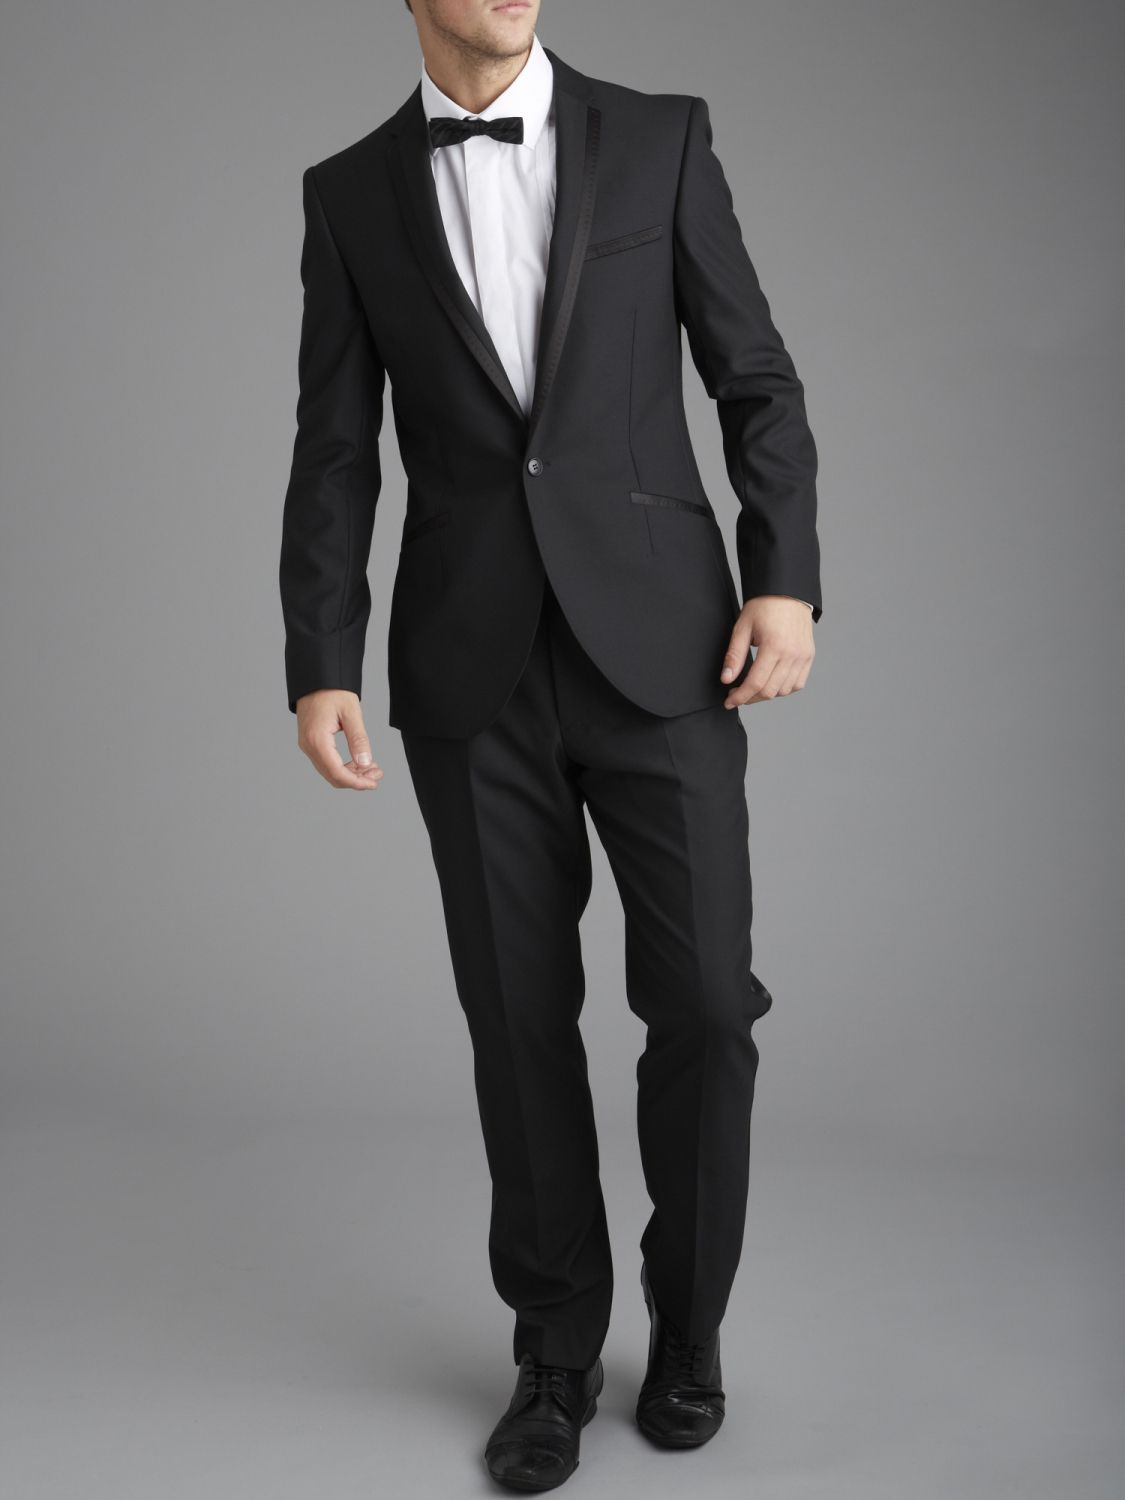 Men's Suits and Tuxedos From your working day to after-hours and special occasions, being suitably turned out is simple with our wide range of men's suits and tuxedos. Start with our suit fit guide to find your perfect fit, then take your pick from 2-piece or 3-piece suits, luxurious Italian cloths or some designer tailoring from our edit of.